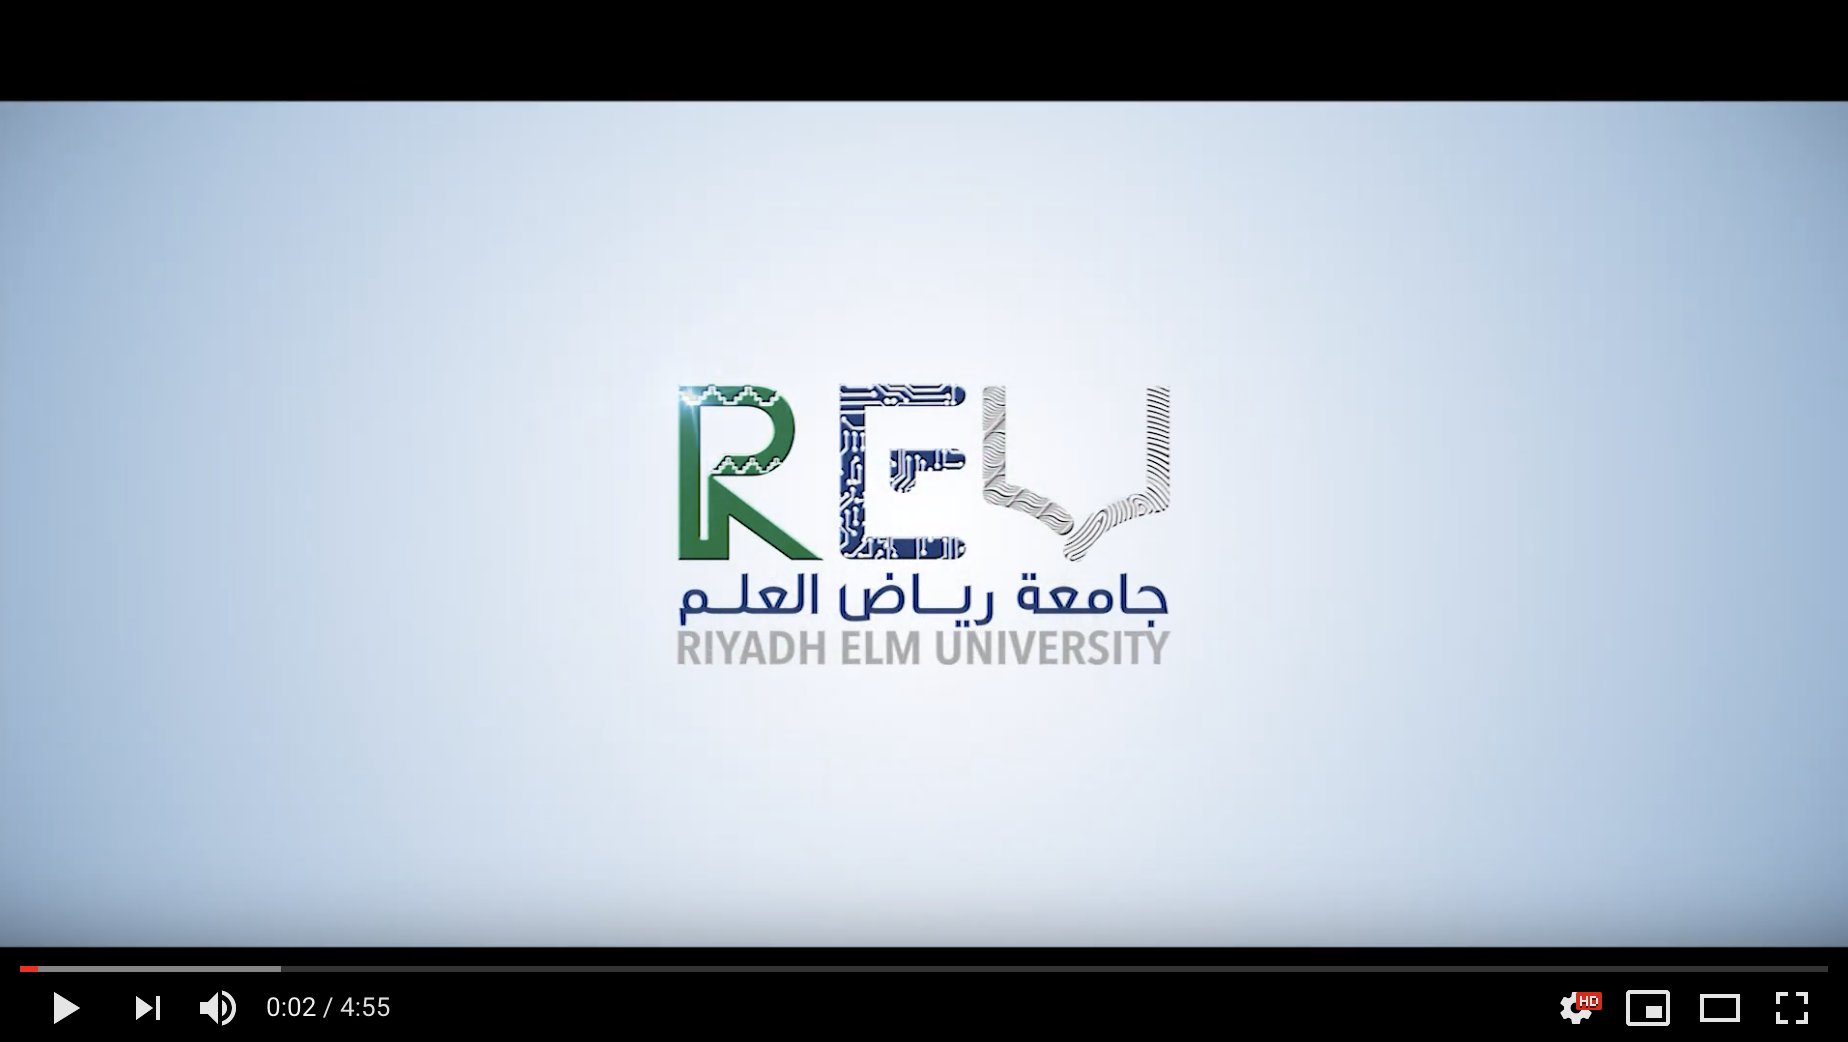 Riyadh Elm University 2019 Film